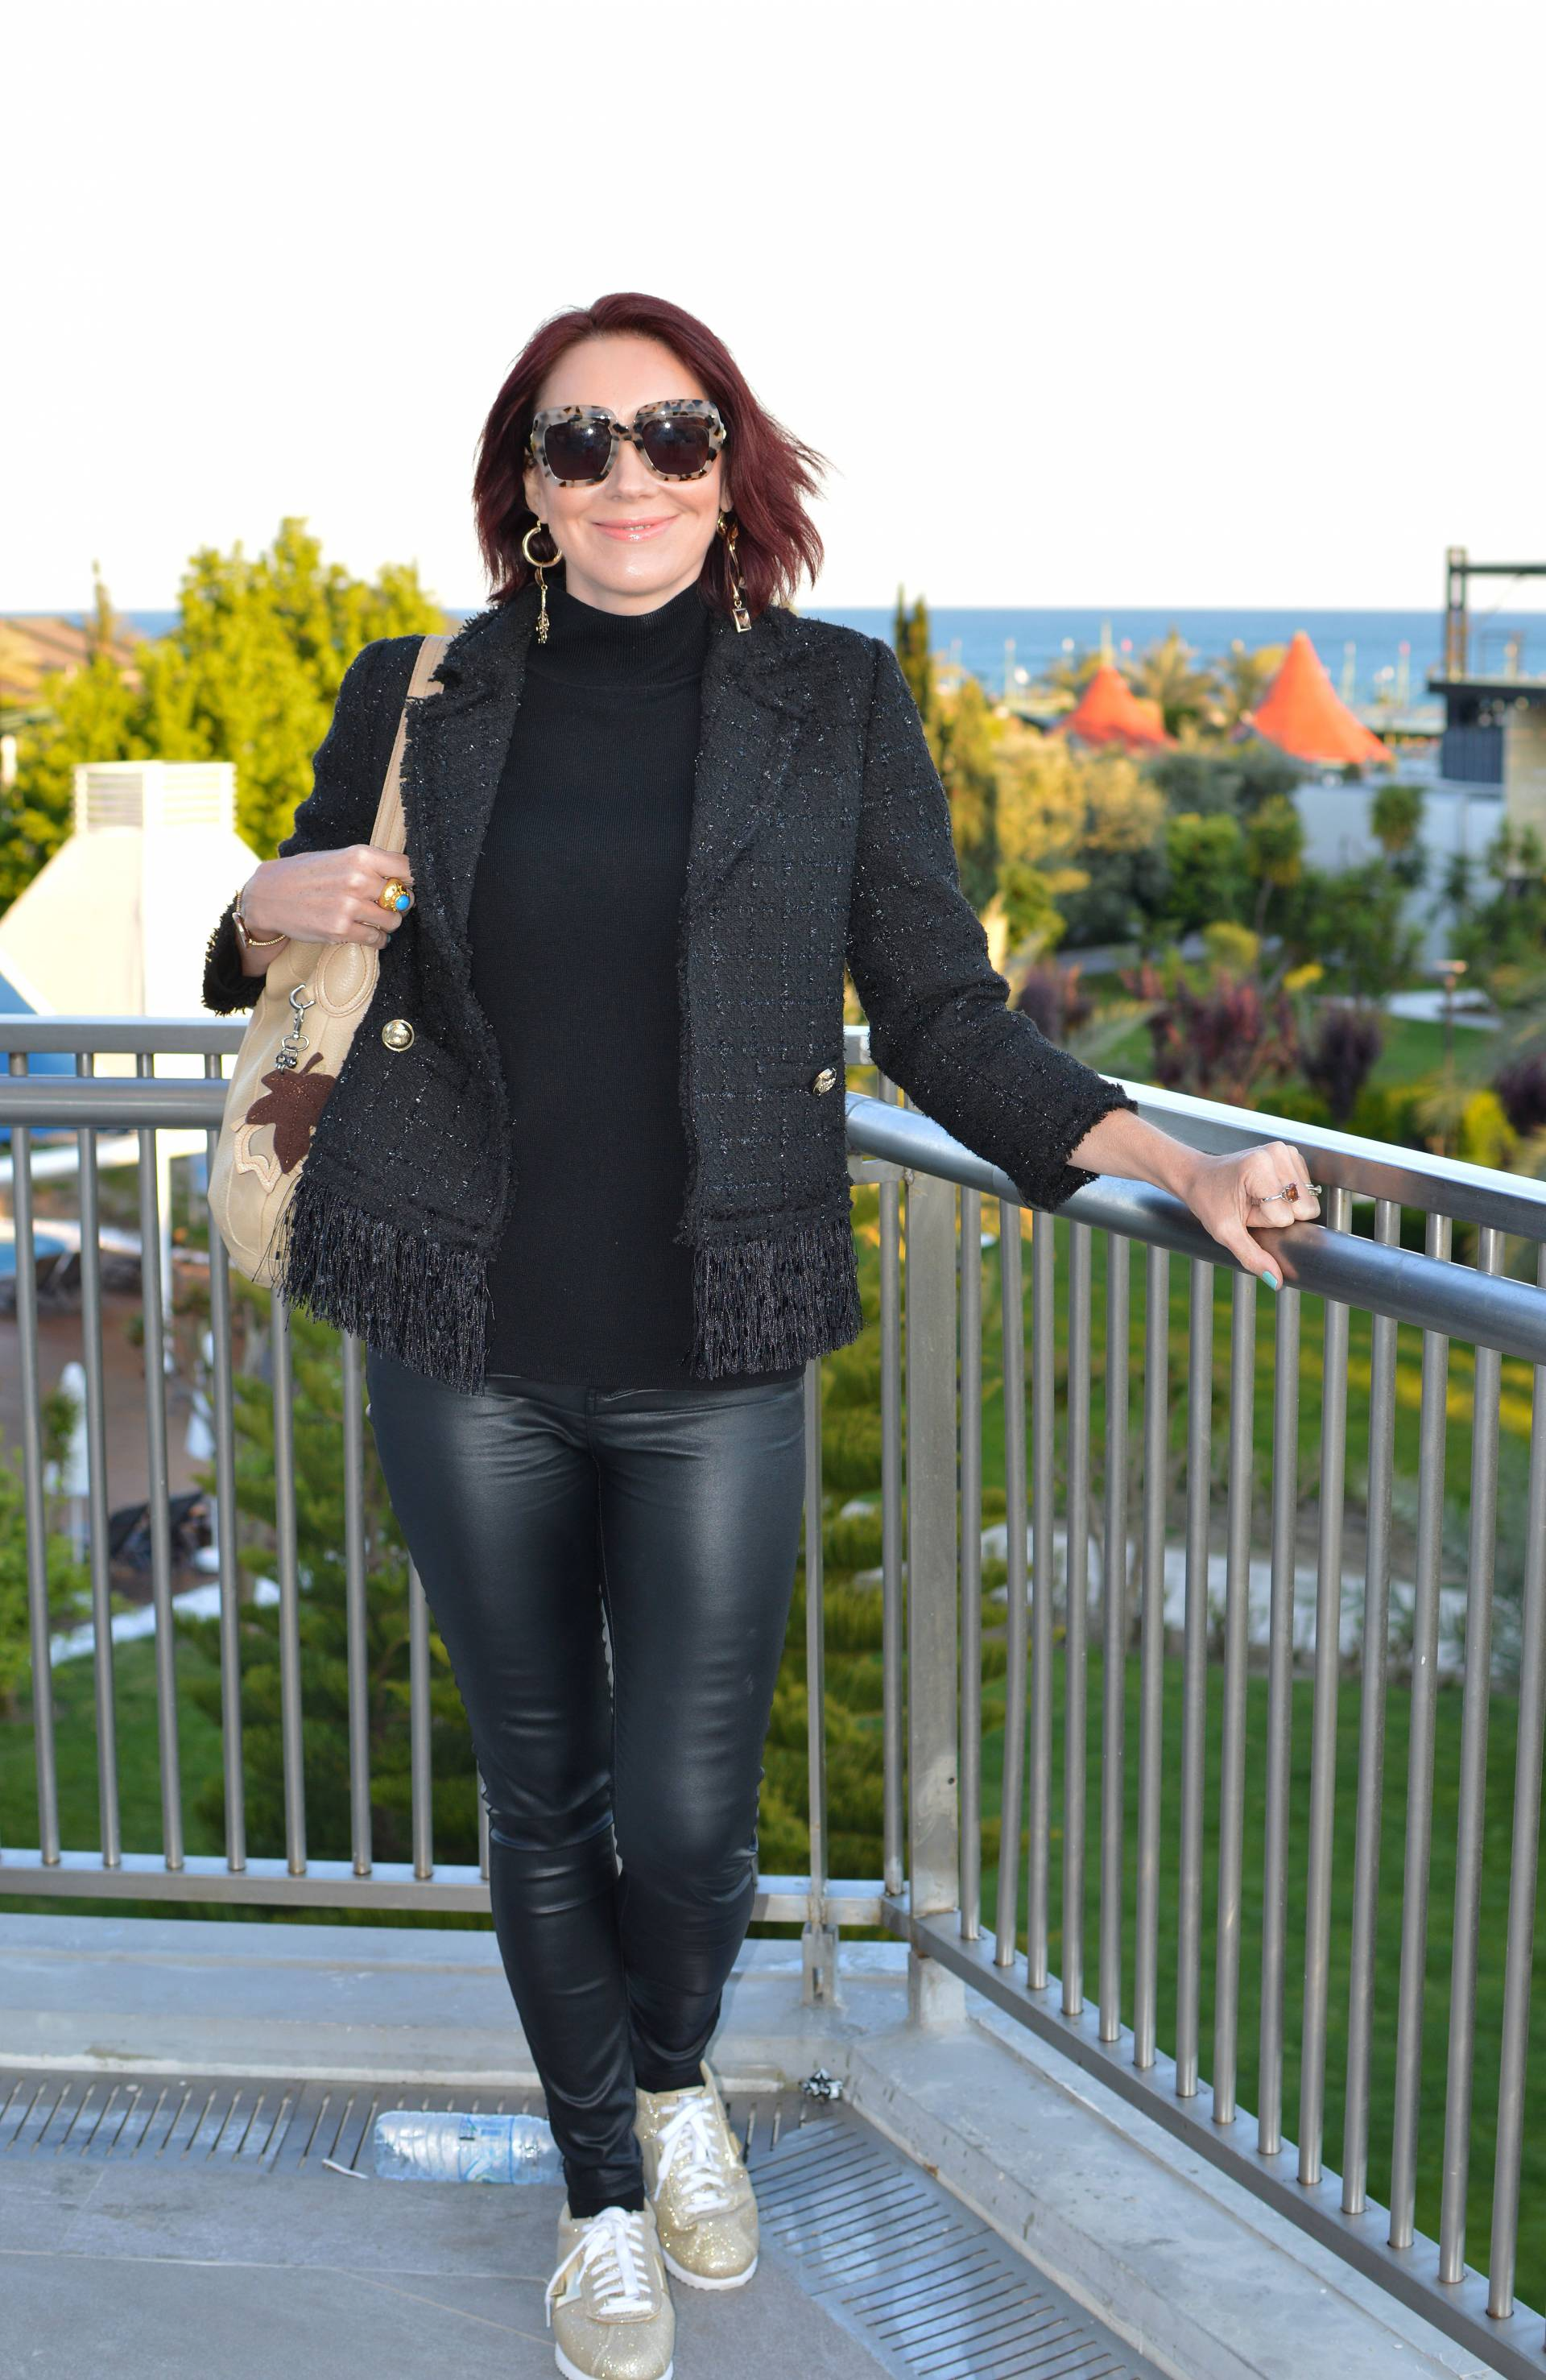 A Stylish Outfit For Travelling + link up